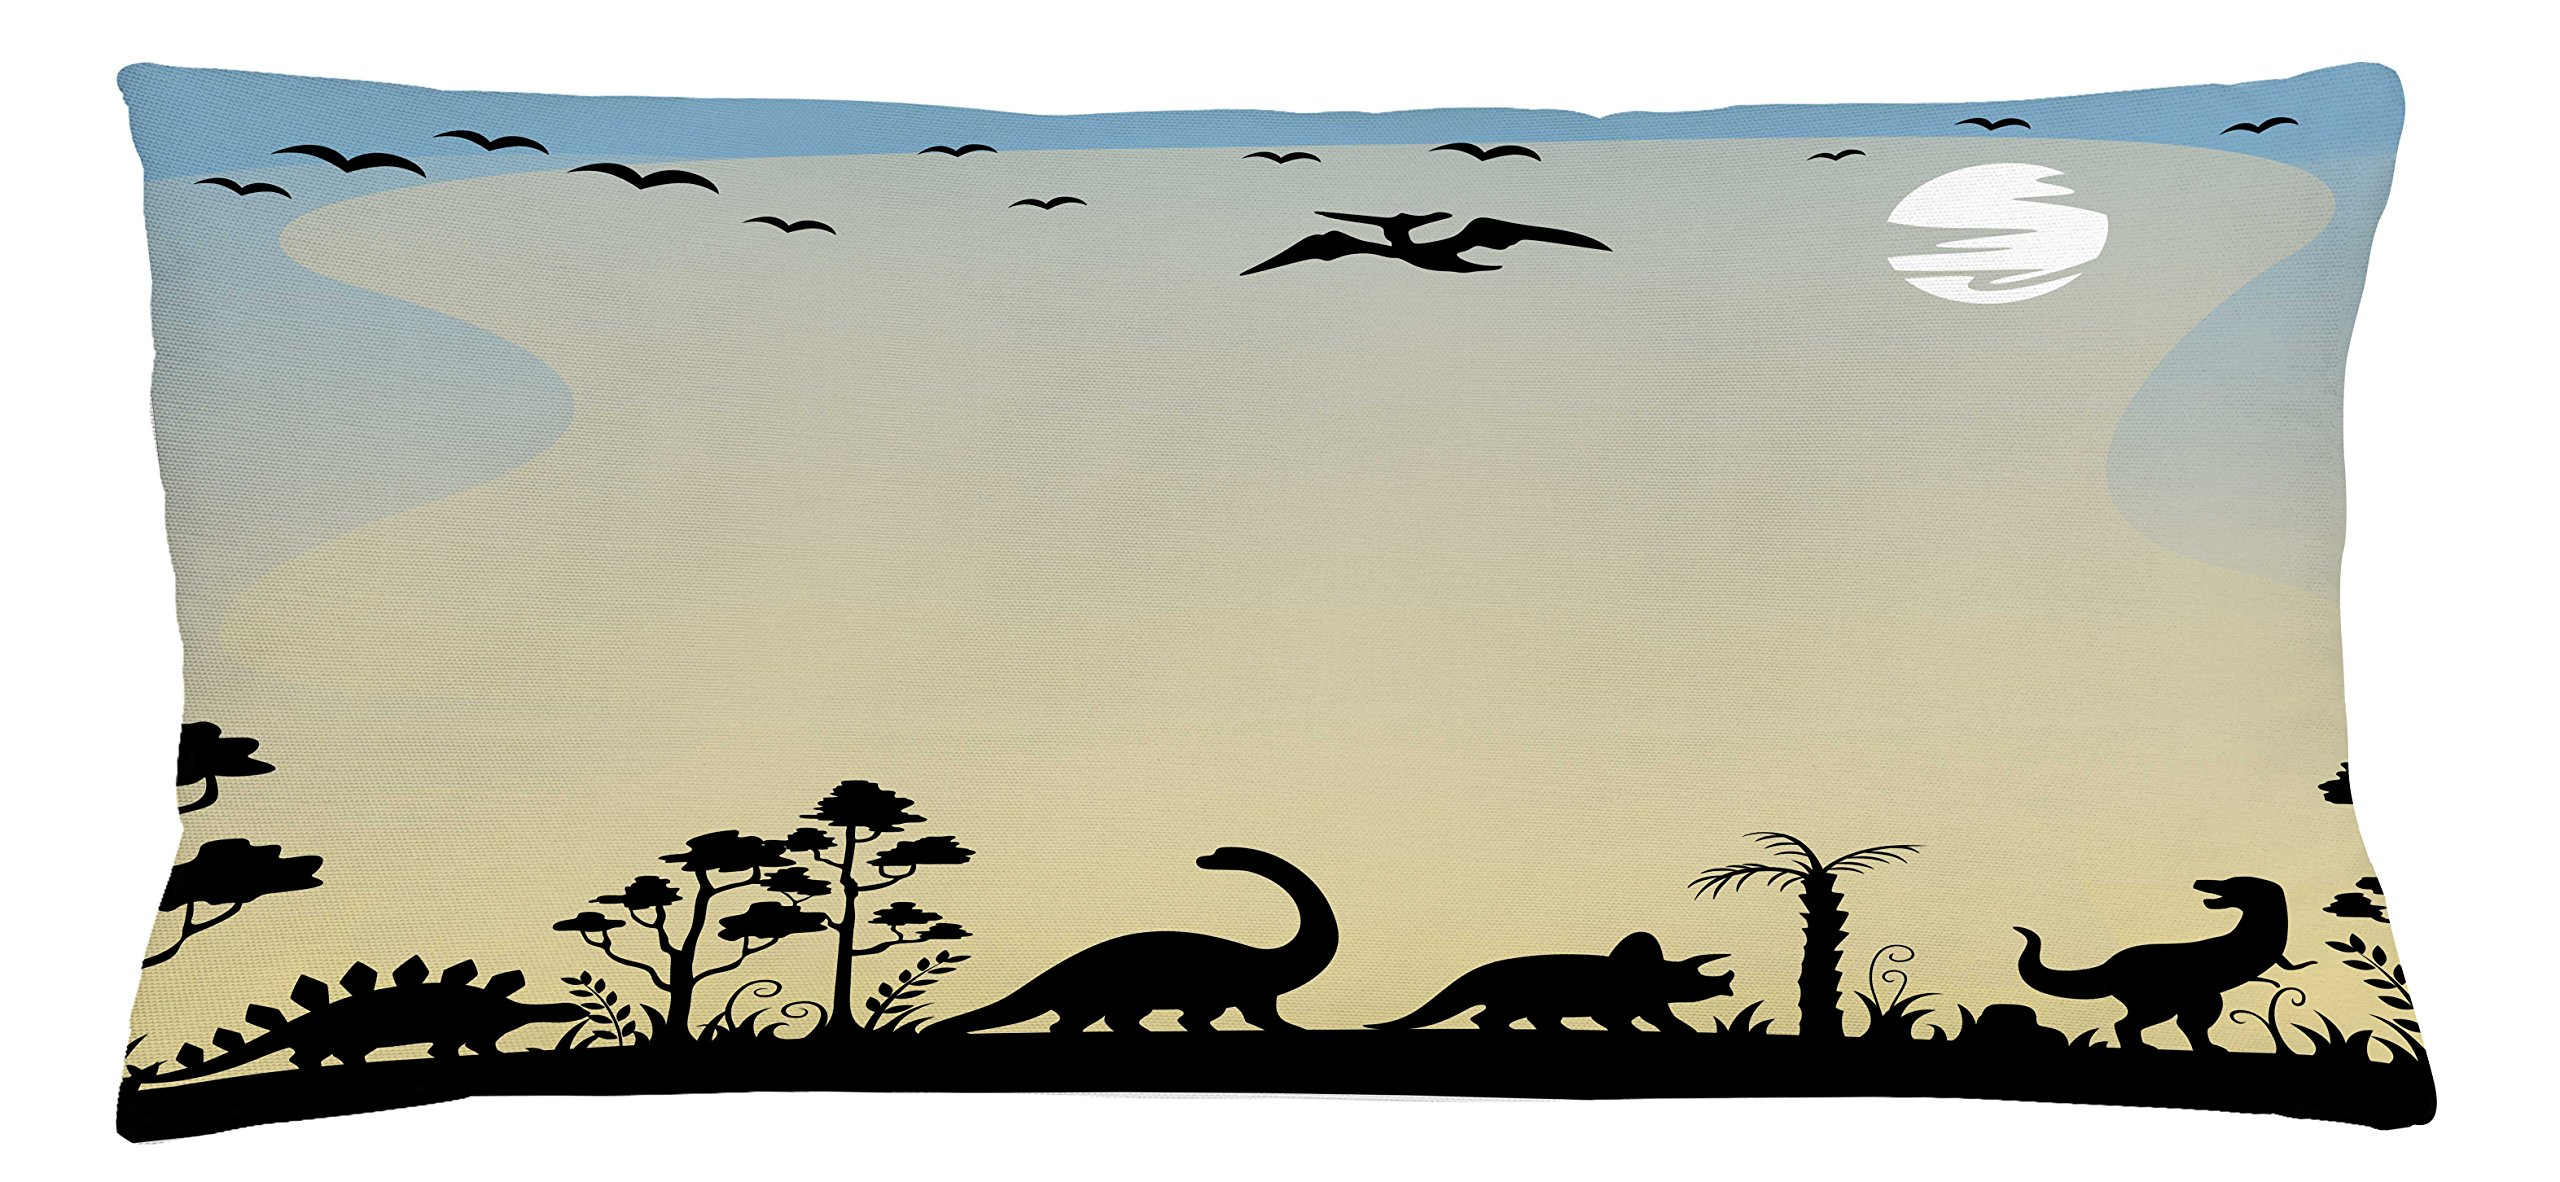 Lunarable Boy's Room Throw Pillow Cushion Cover, Dinosaurs in Fauna Graphic Illustration Extinct Animals Sunset Prehistoric Time, Decorative Square Accent Pillow Case, 36 X 16 inches, Sand Brown